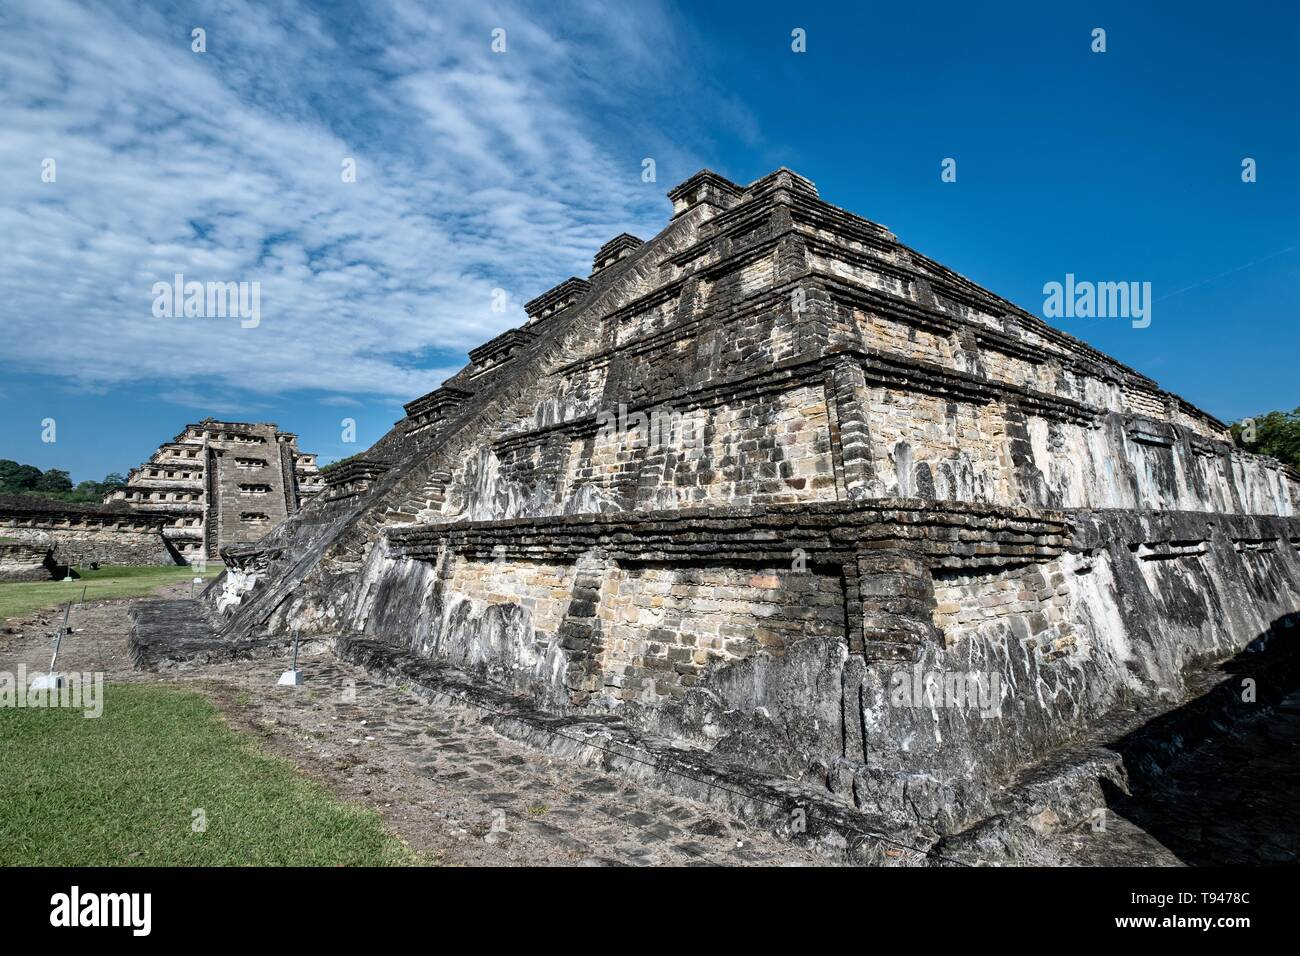 Mesoamerica Blue Temple Pyramid, right, and the Pyramid of the Niches, left, at the pre-Columbian archeological complex of El Tajin in Tajin, Veracruz, Mexico. El Tajín flourished from 600 to 1200 CE and during this time numerous temples, palaces, ballcourts, and pyramids were built by the Totonac people and is one of the largest and most important cities of the Classic era of Mesoamerica. - Stock Image